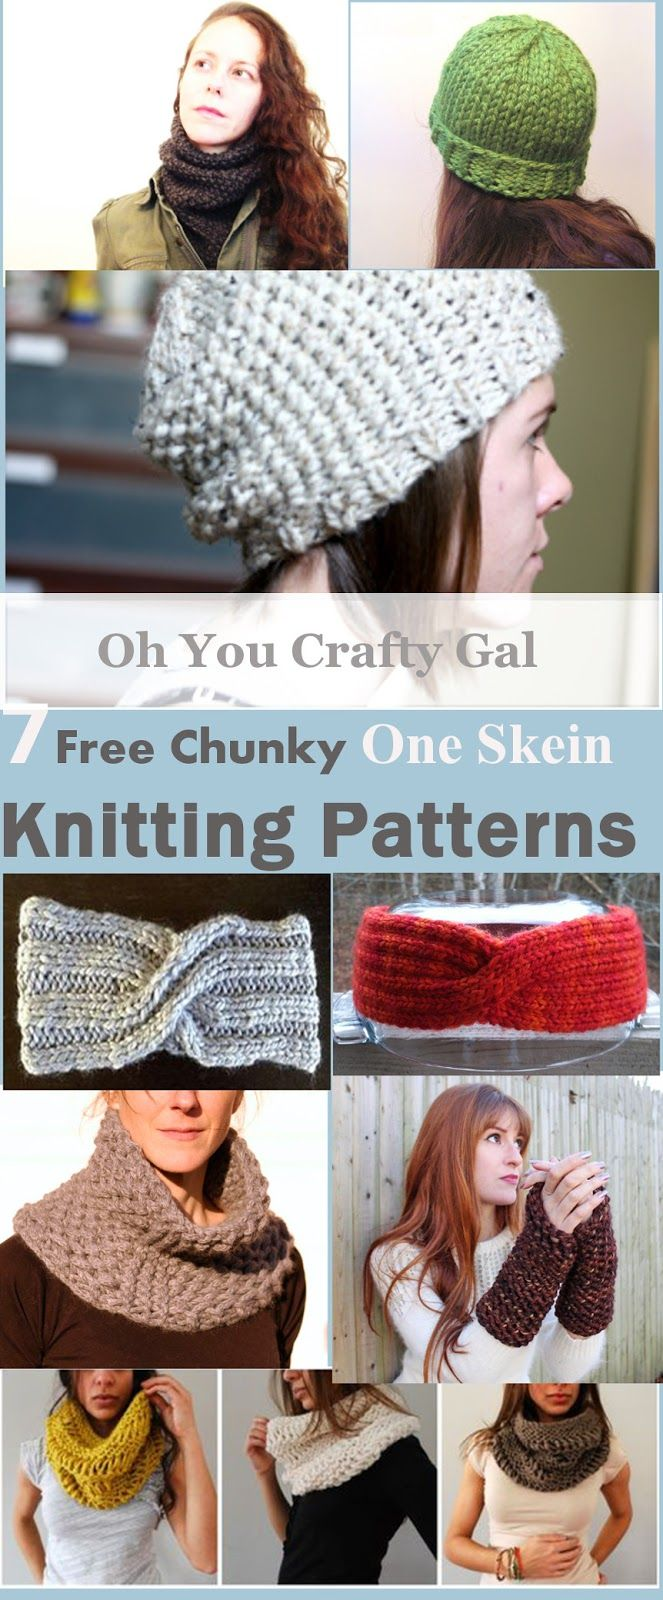 Oh You Crafty Gal: 7 Free One Skein Chunky Knitting Patterns That Knit up Fast. Great For Gifts and Beginners!